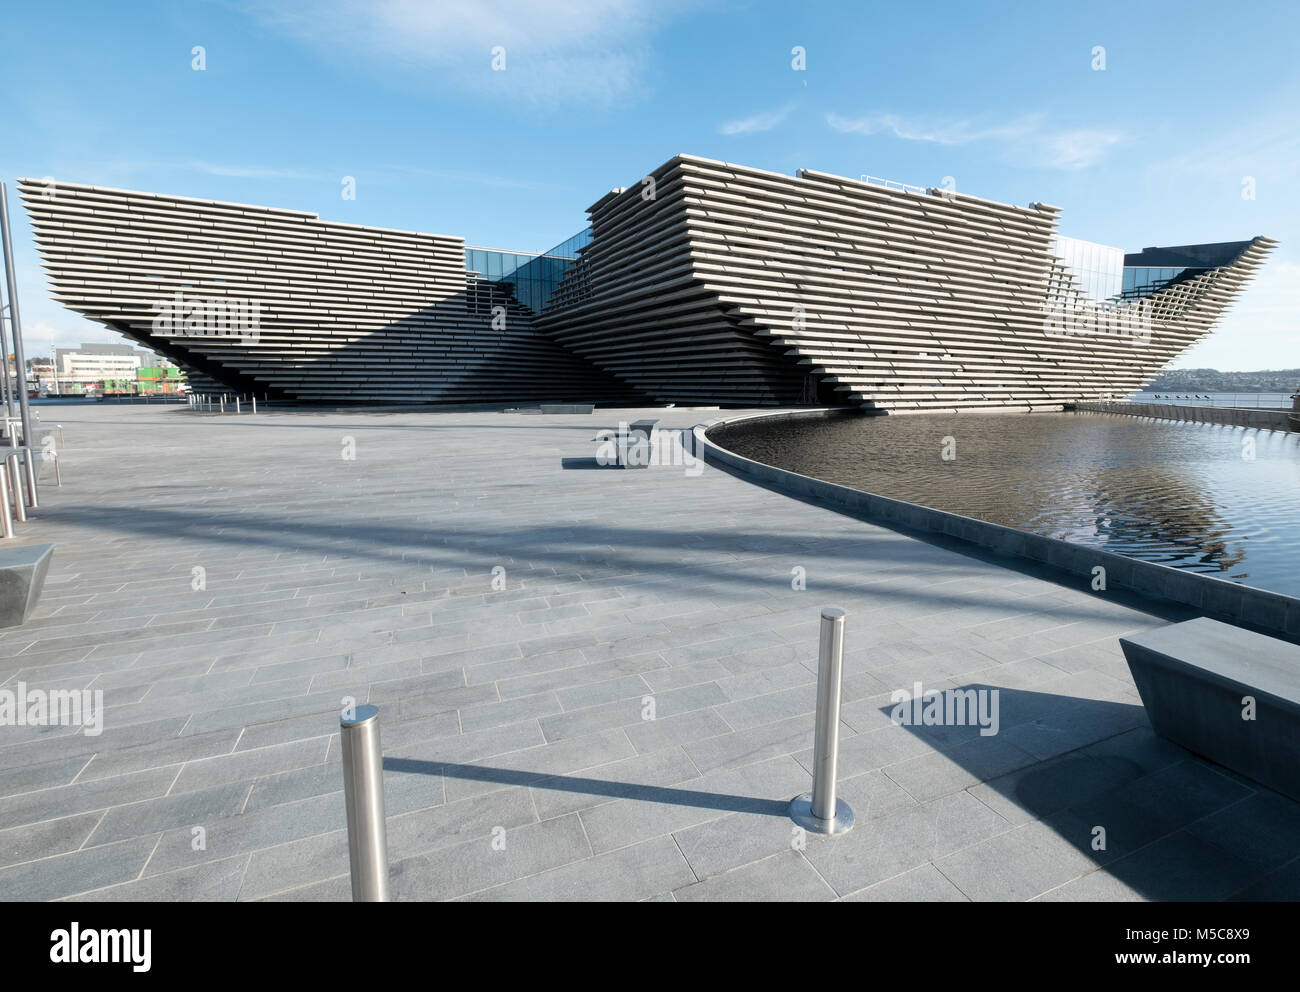 The V&A Museum of Design at the waterfront by the Firth of Tay Dundee Tayside Scotland UK - Stock Image